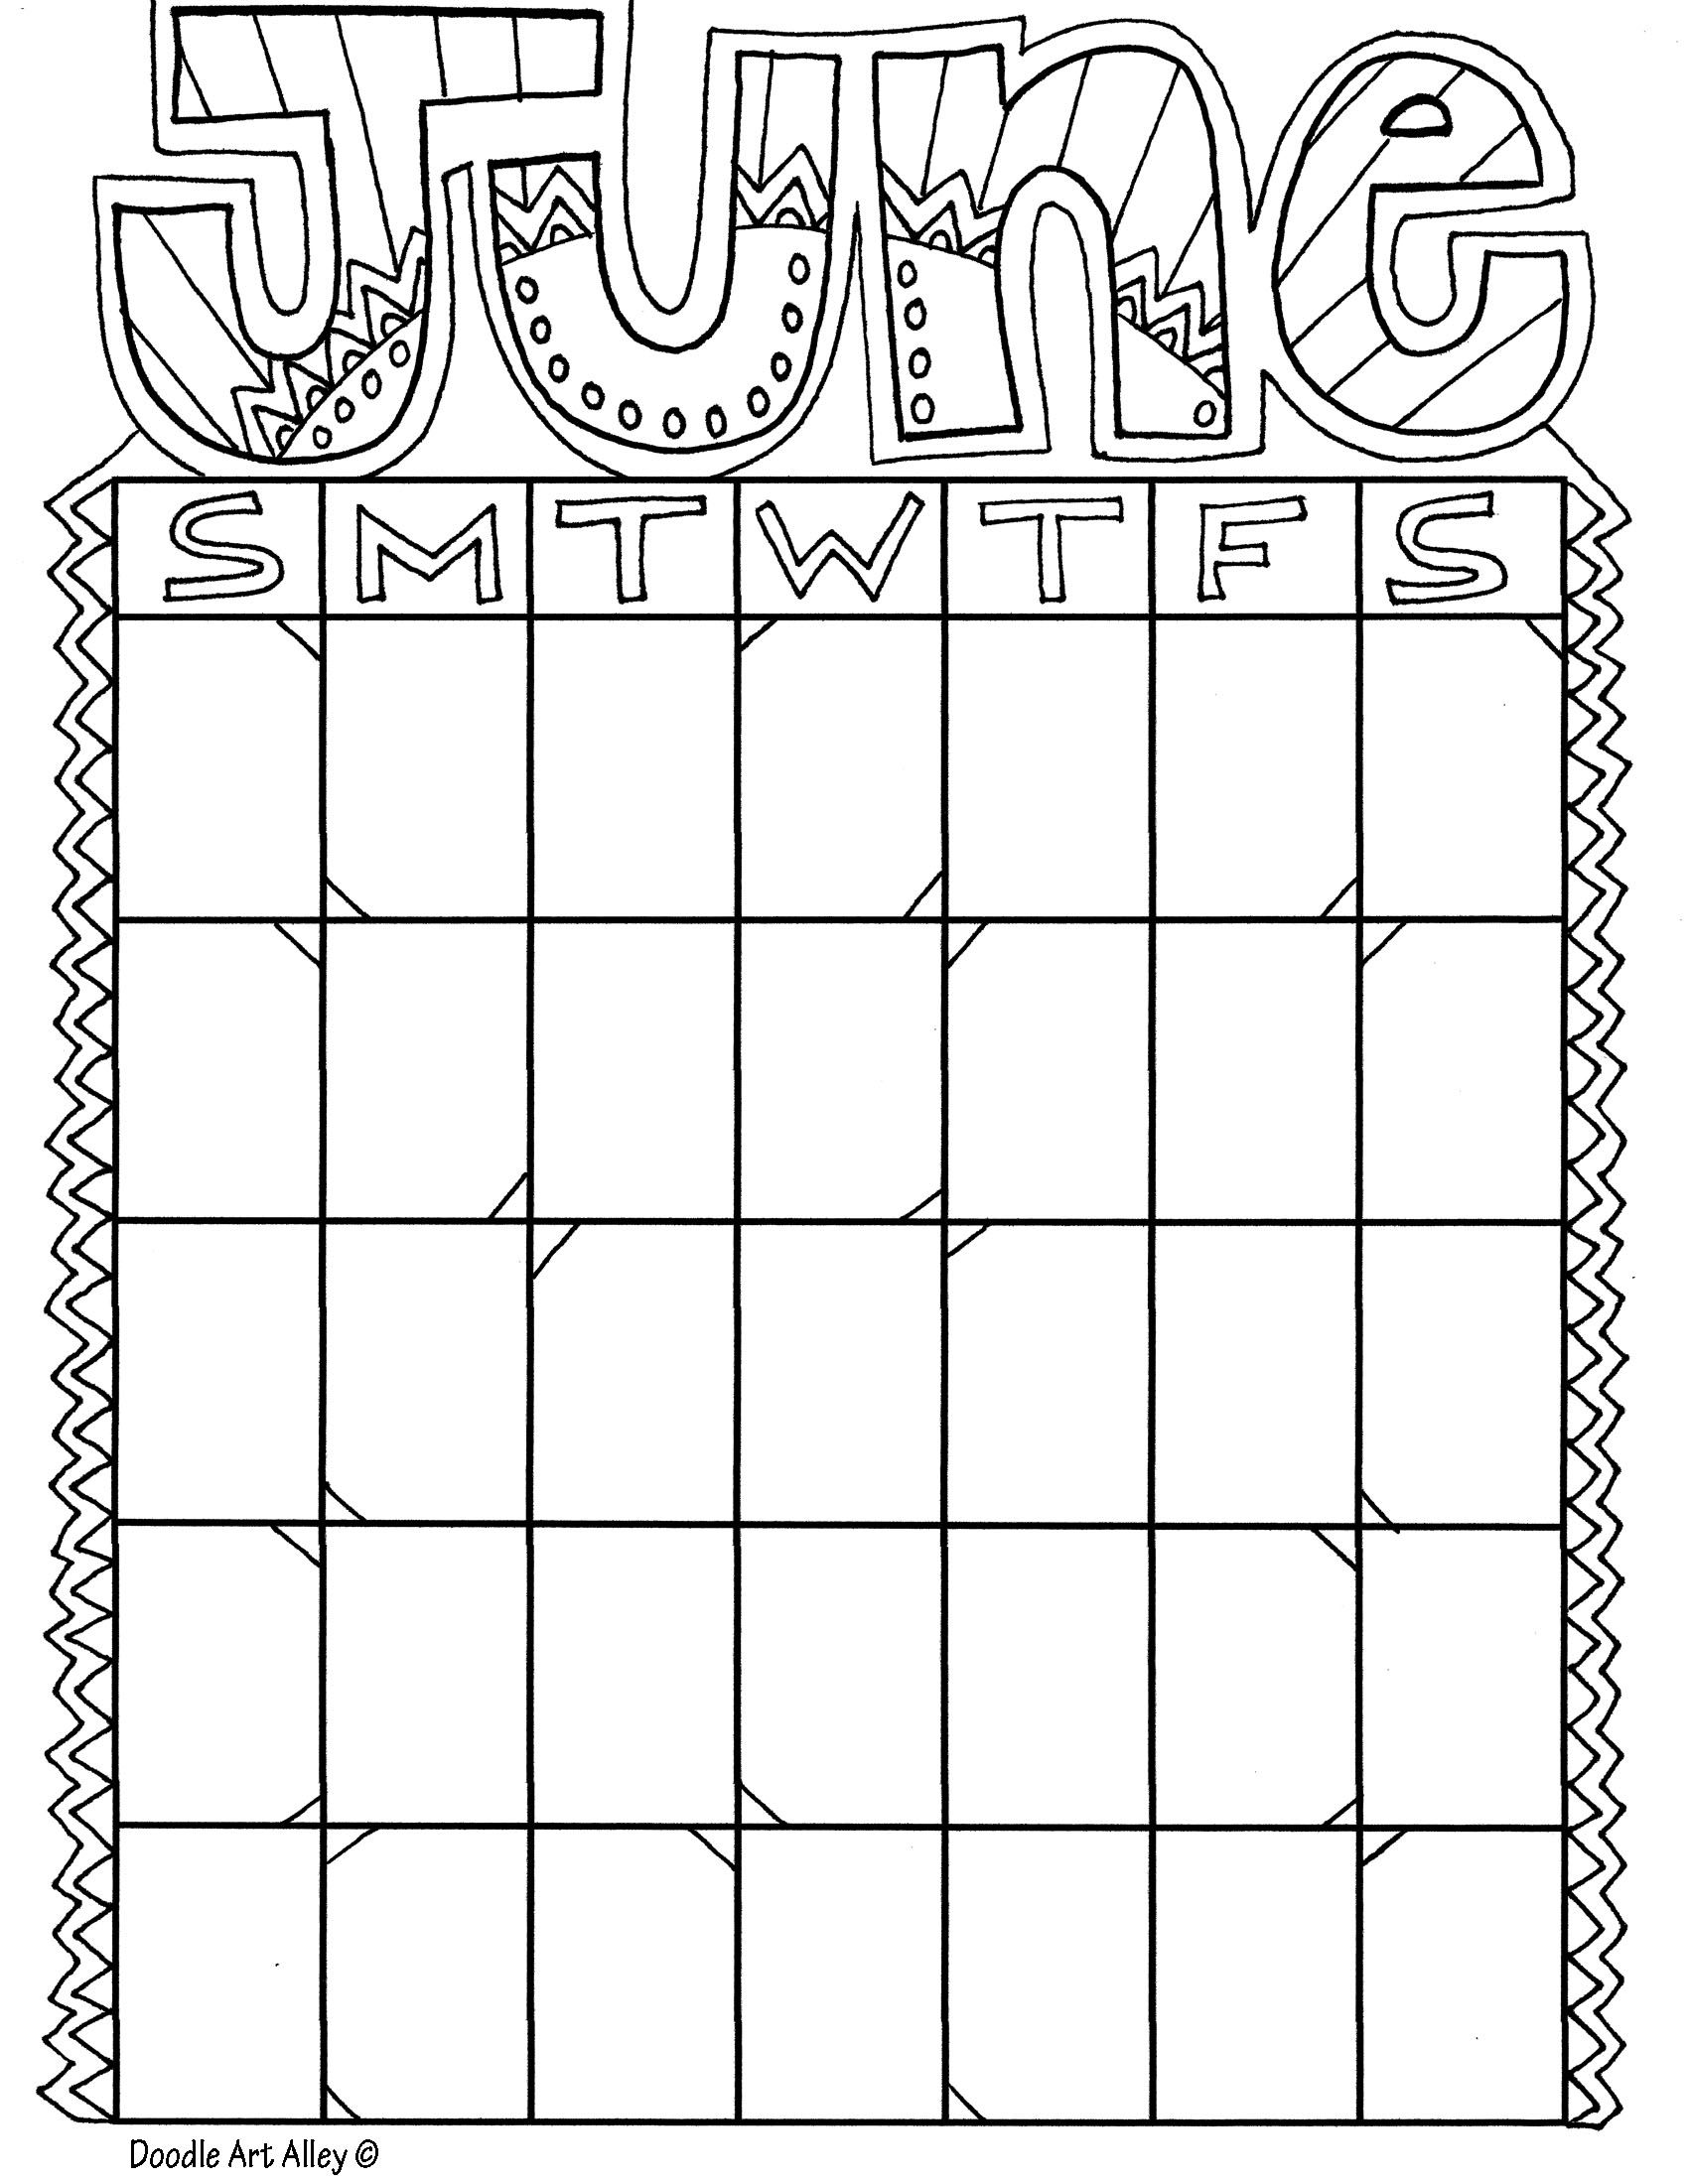 Calendars Printable Calendars Coloring Pages Calendar Pages